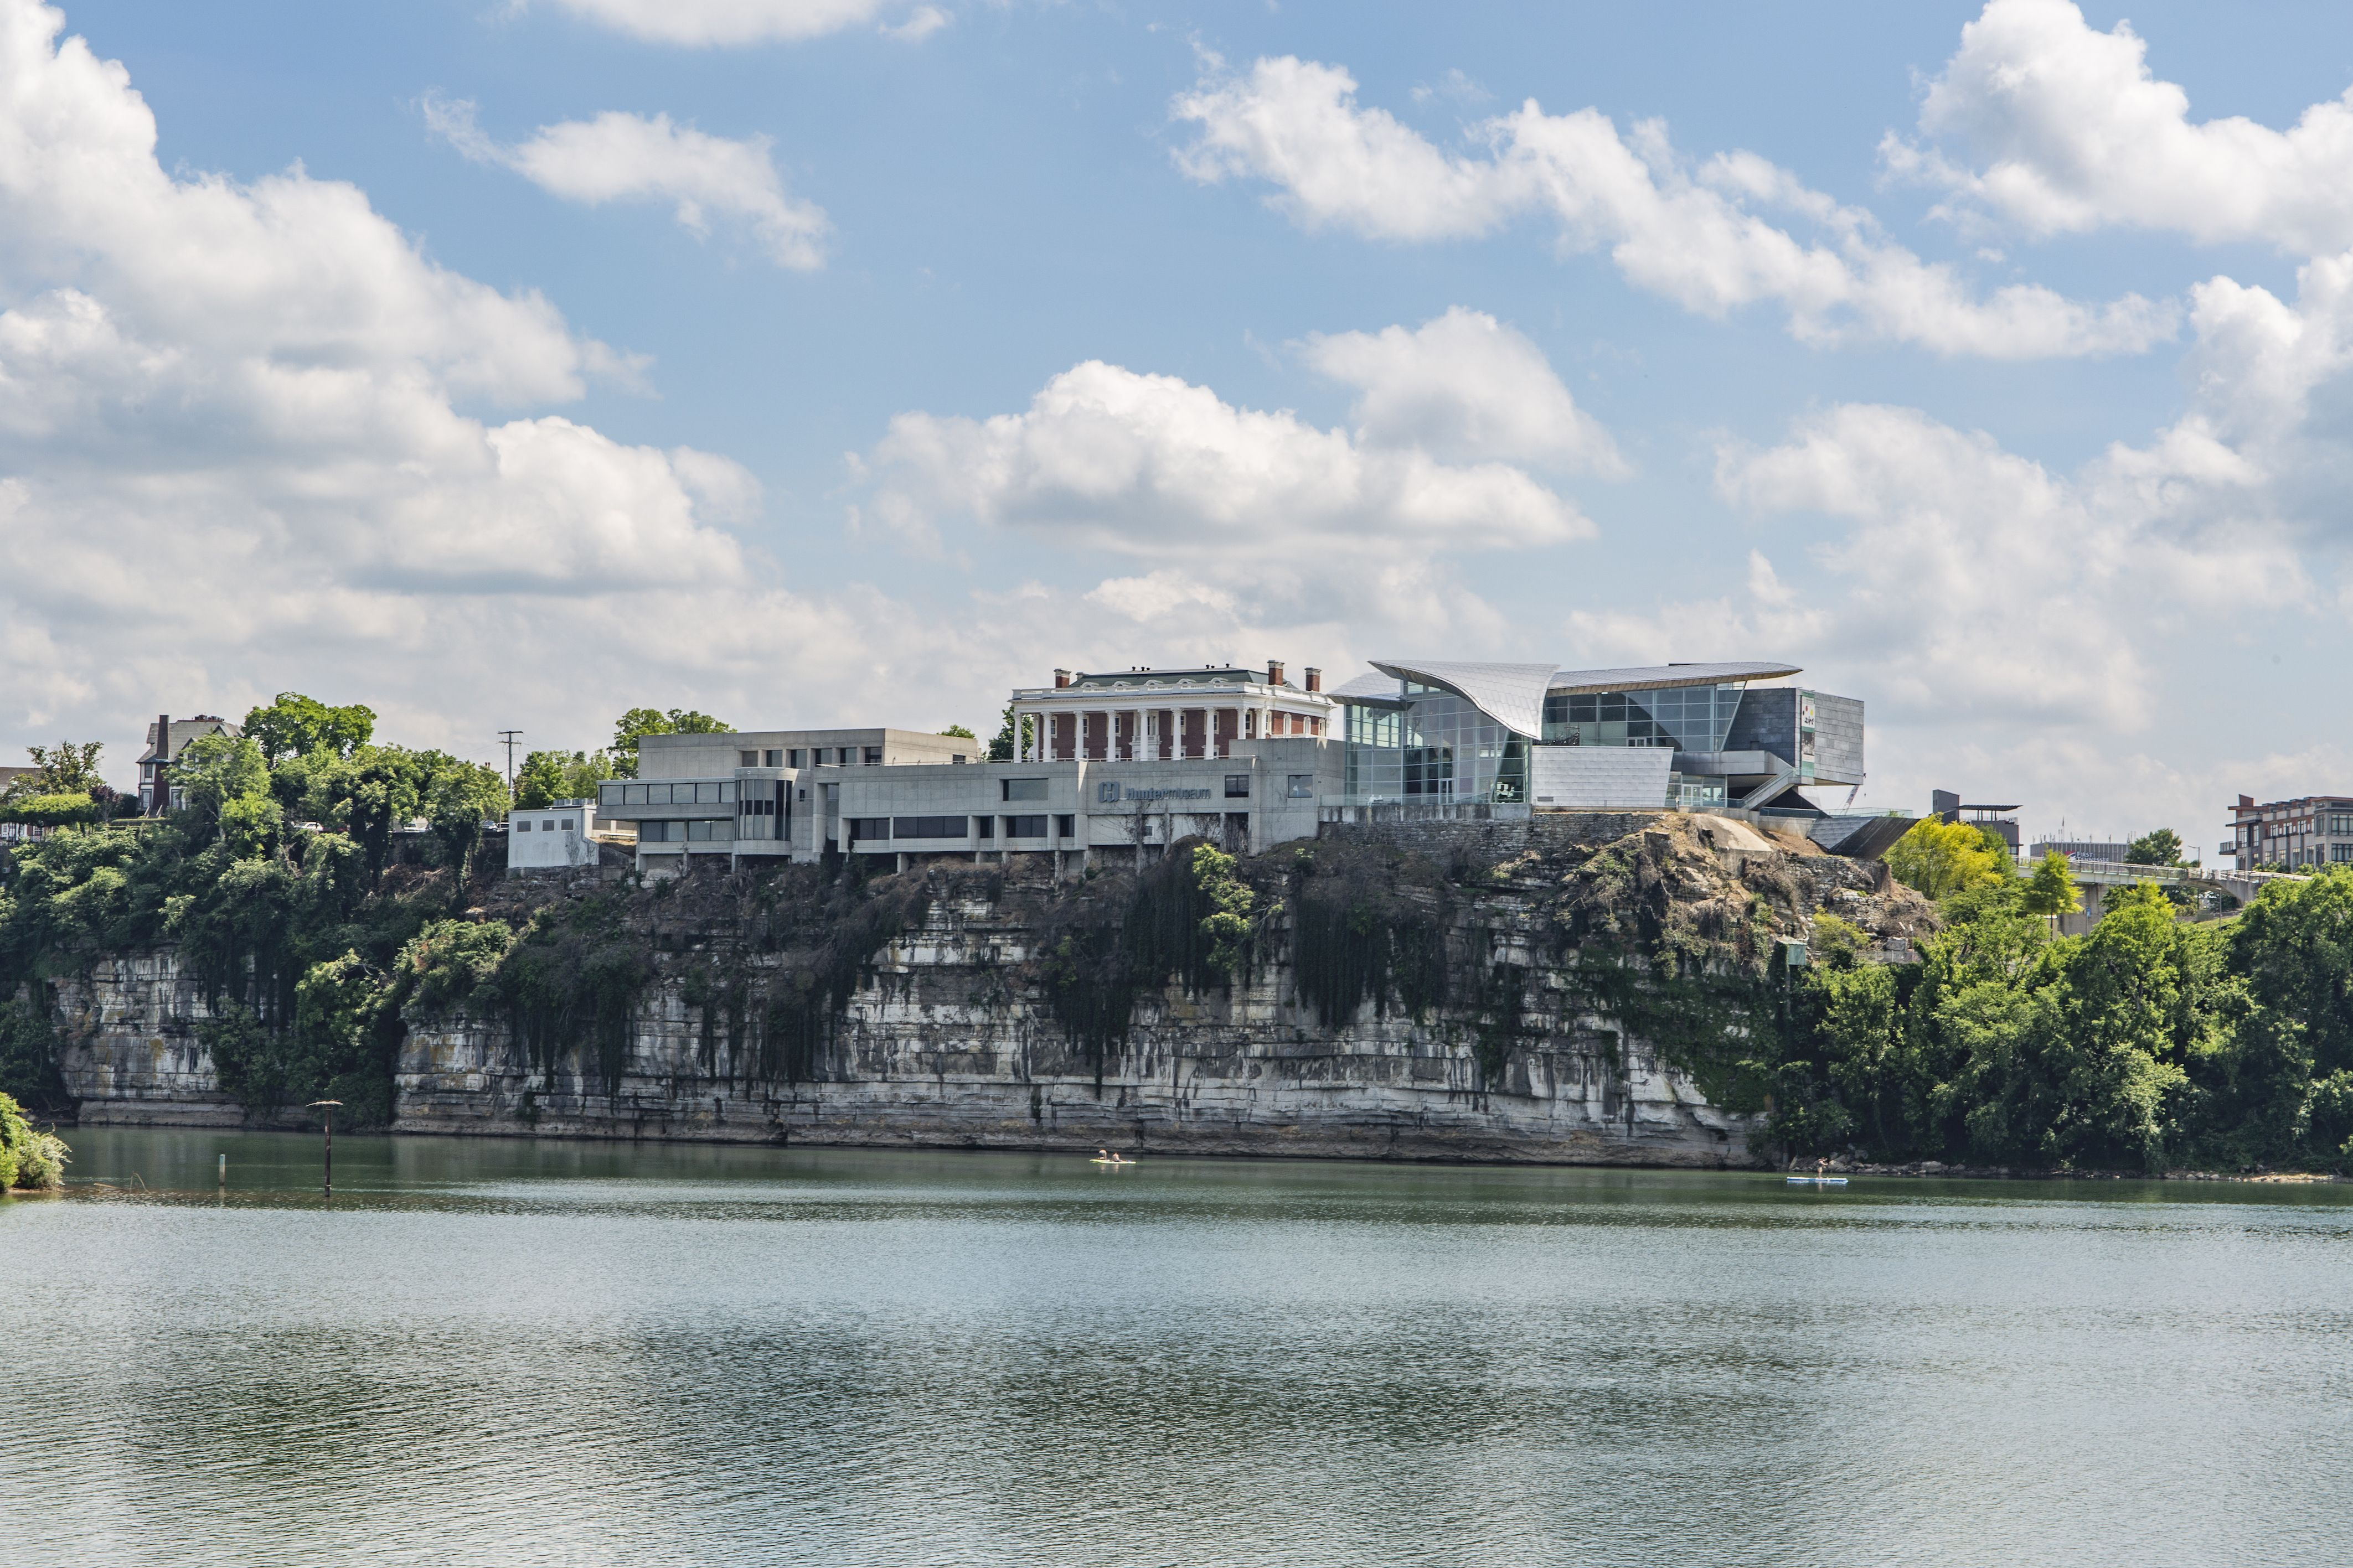 A panoramic shot of the Hunter Museum atop the Bluff overlooking the Tennessee River.